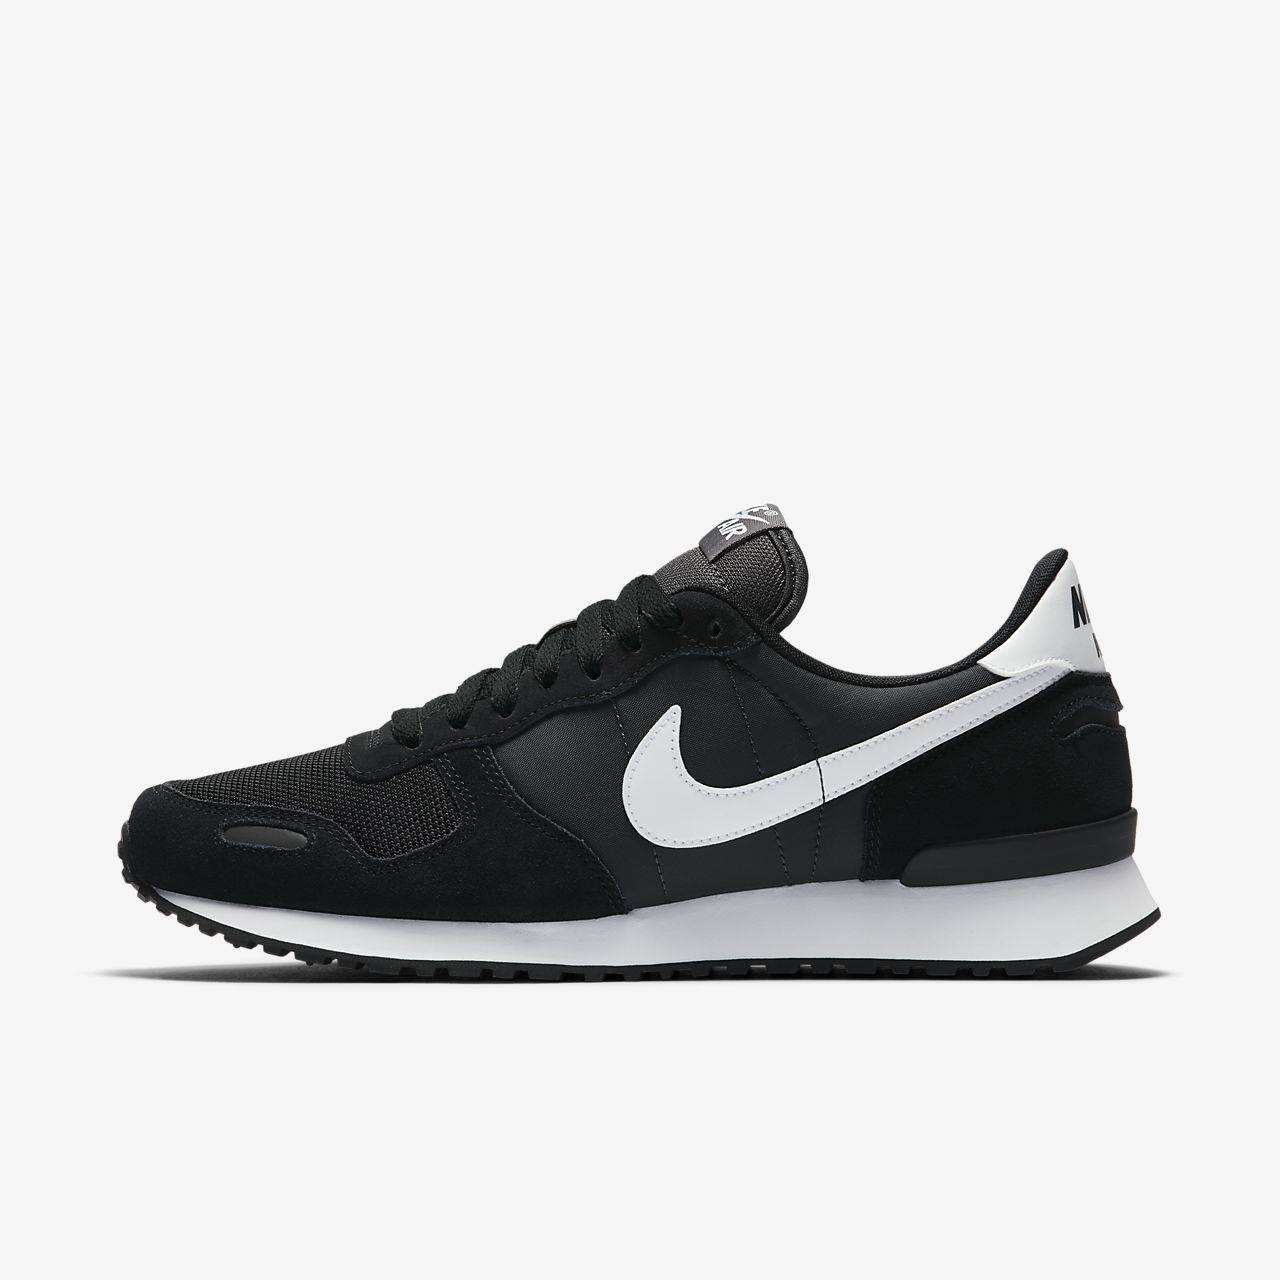 767da0e87e64a Low Resolution Nike Air Vortex Herrenschuh Nike Air Vortex Herrenschuh